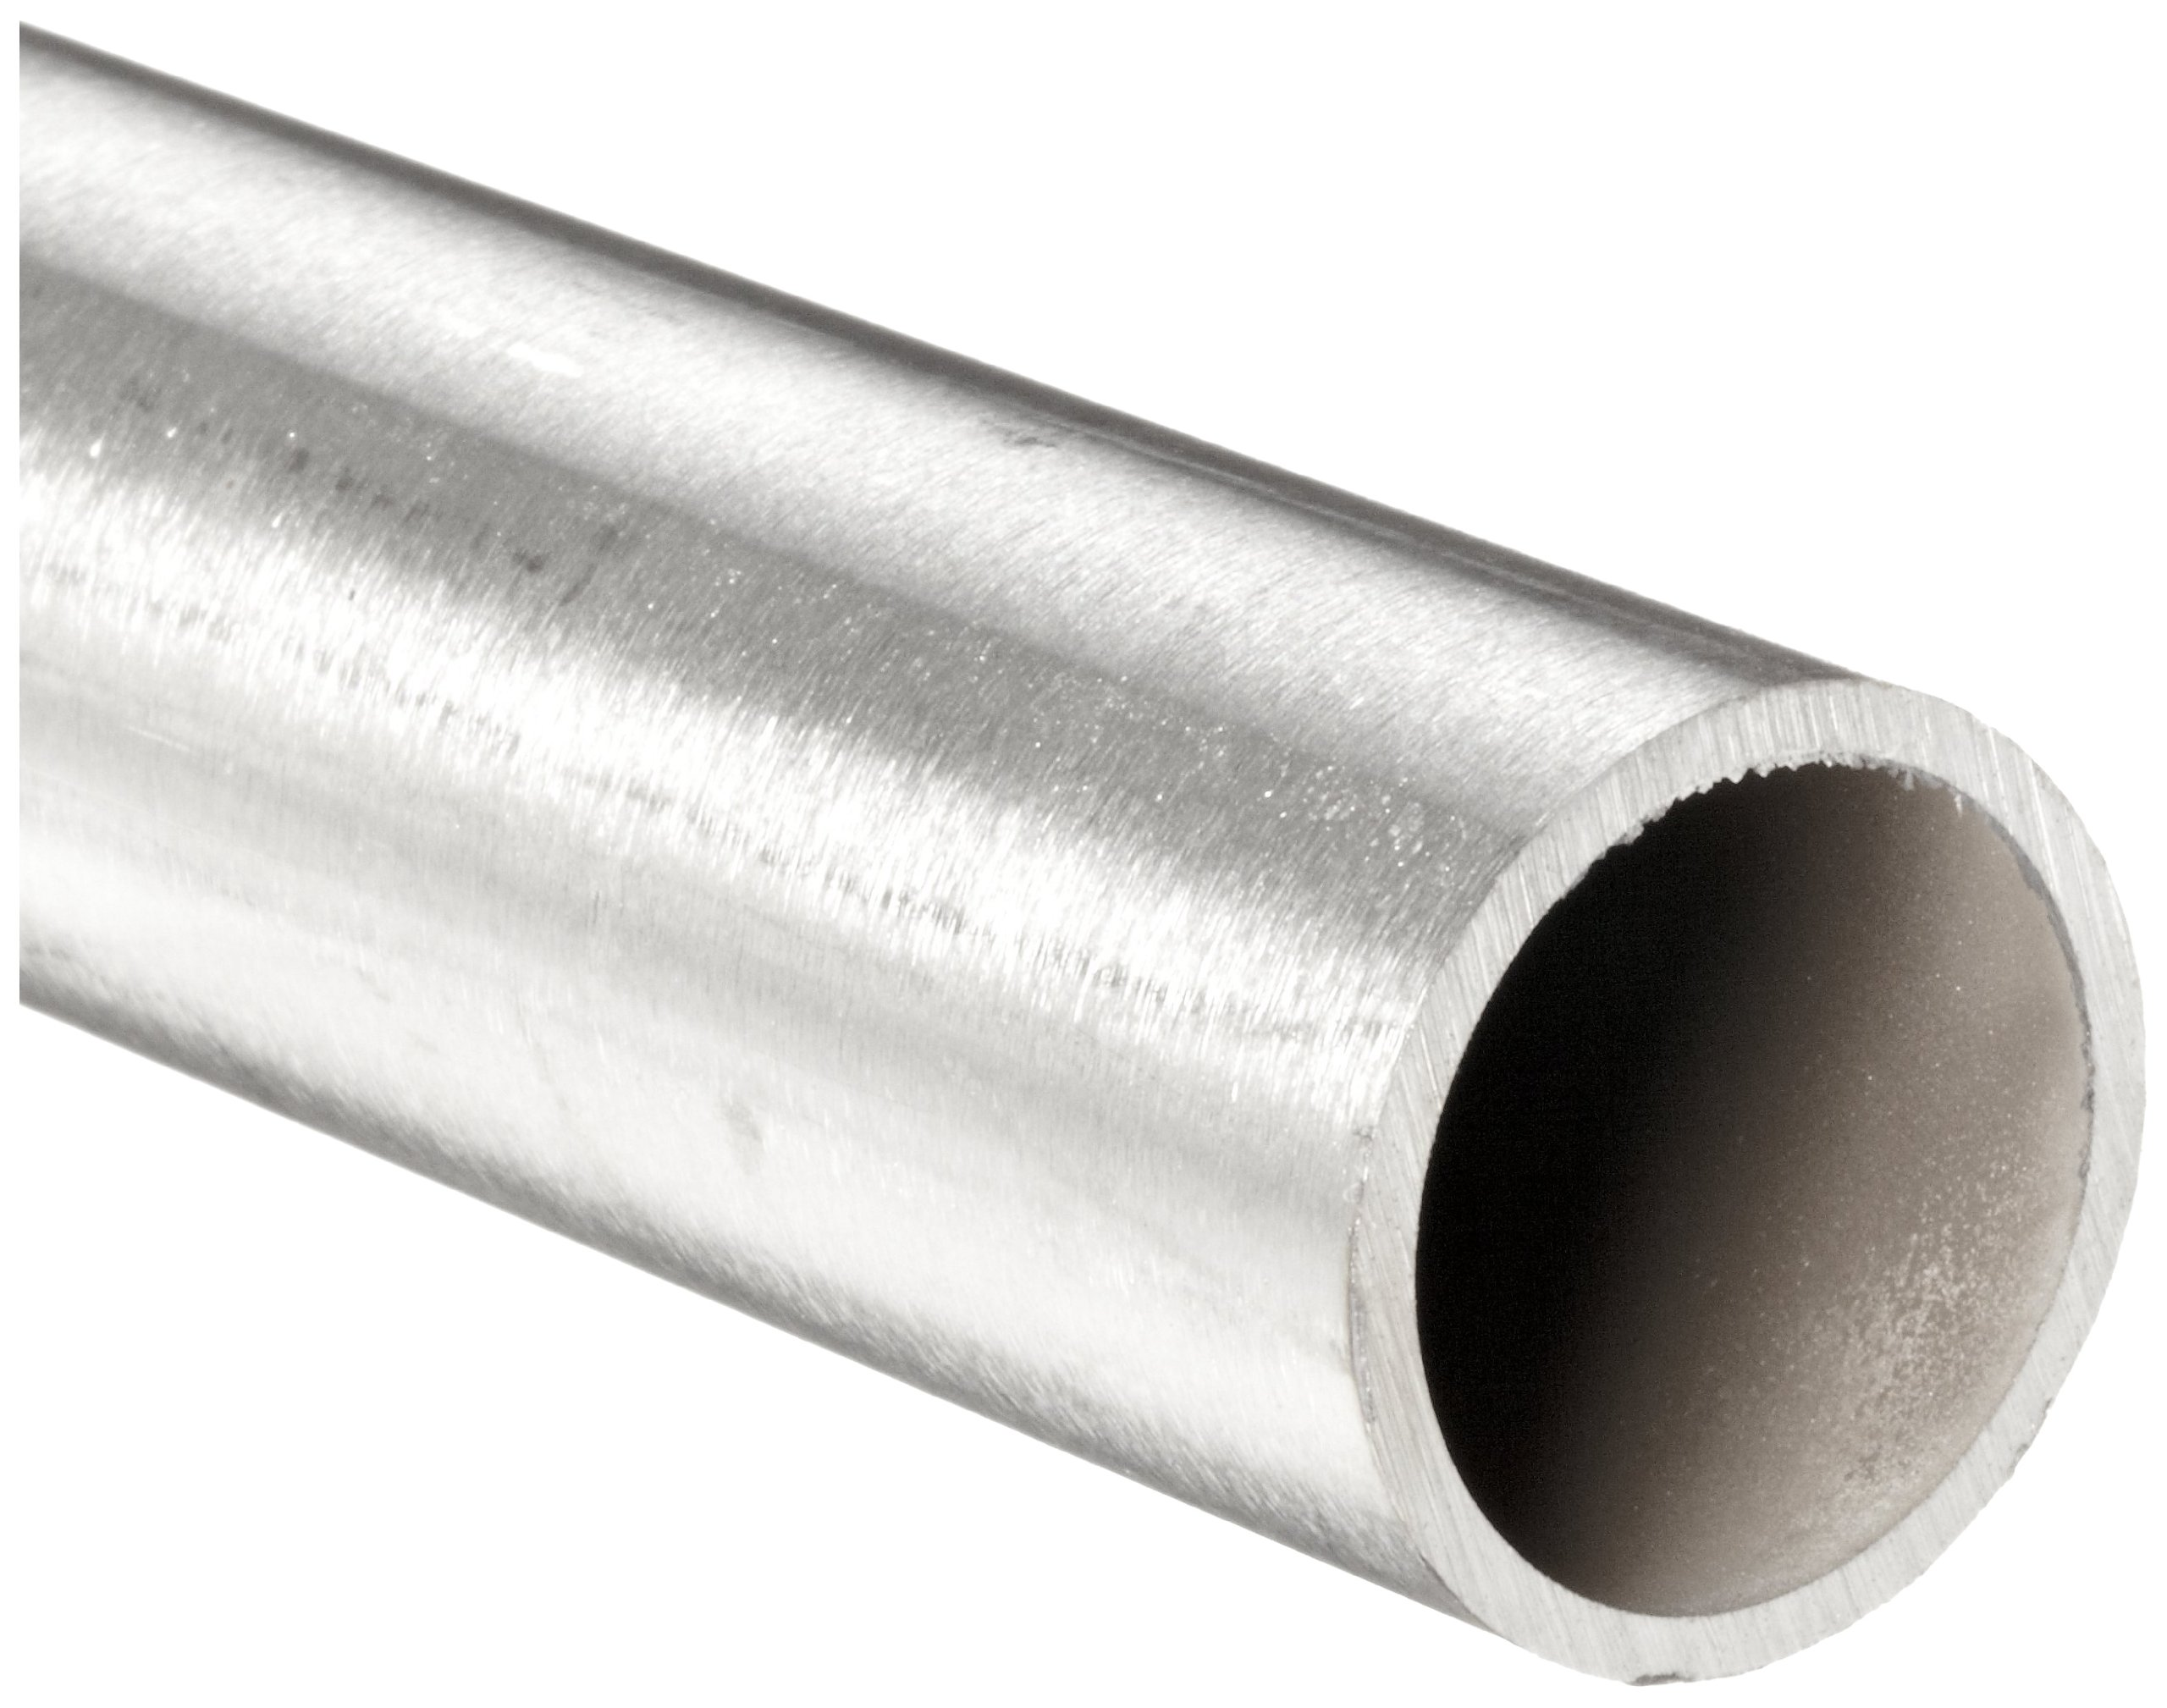 Stainless Steel 316L Seamless Round Tubing, 3/4'' OD, 0.51'' ID, 0.120'' Wall, 72'' Length